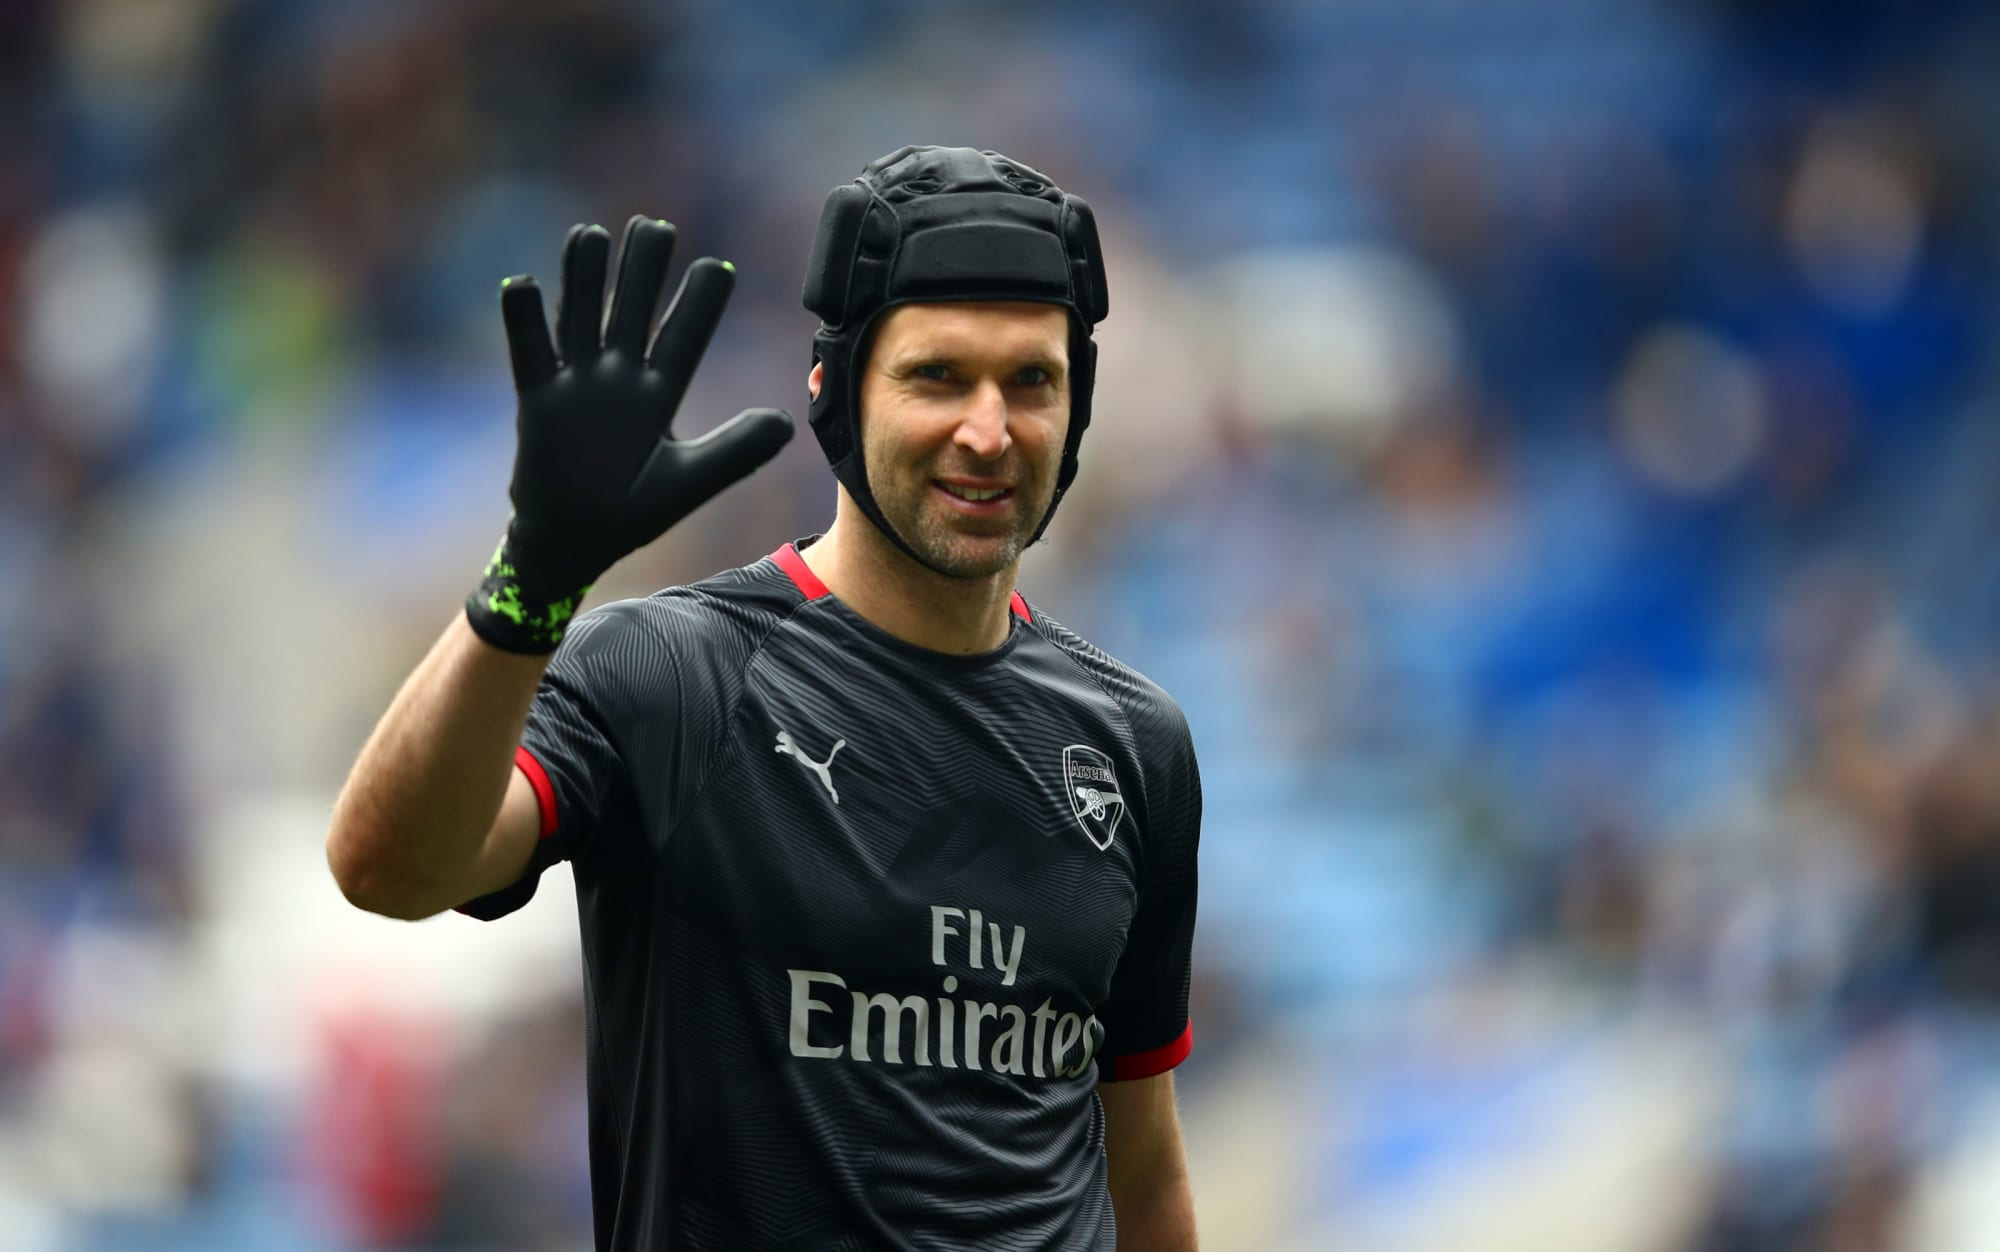 Arsenal And Petr Cech: Right Words, Wrong Time